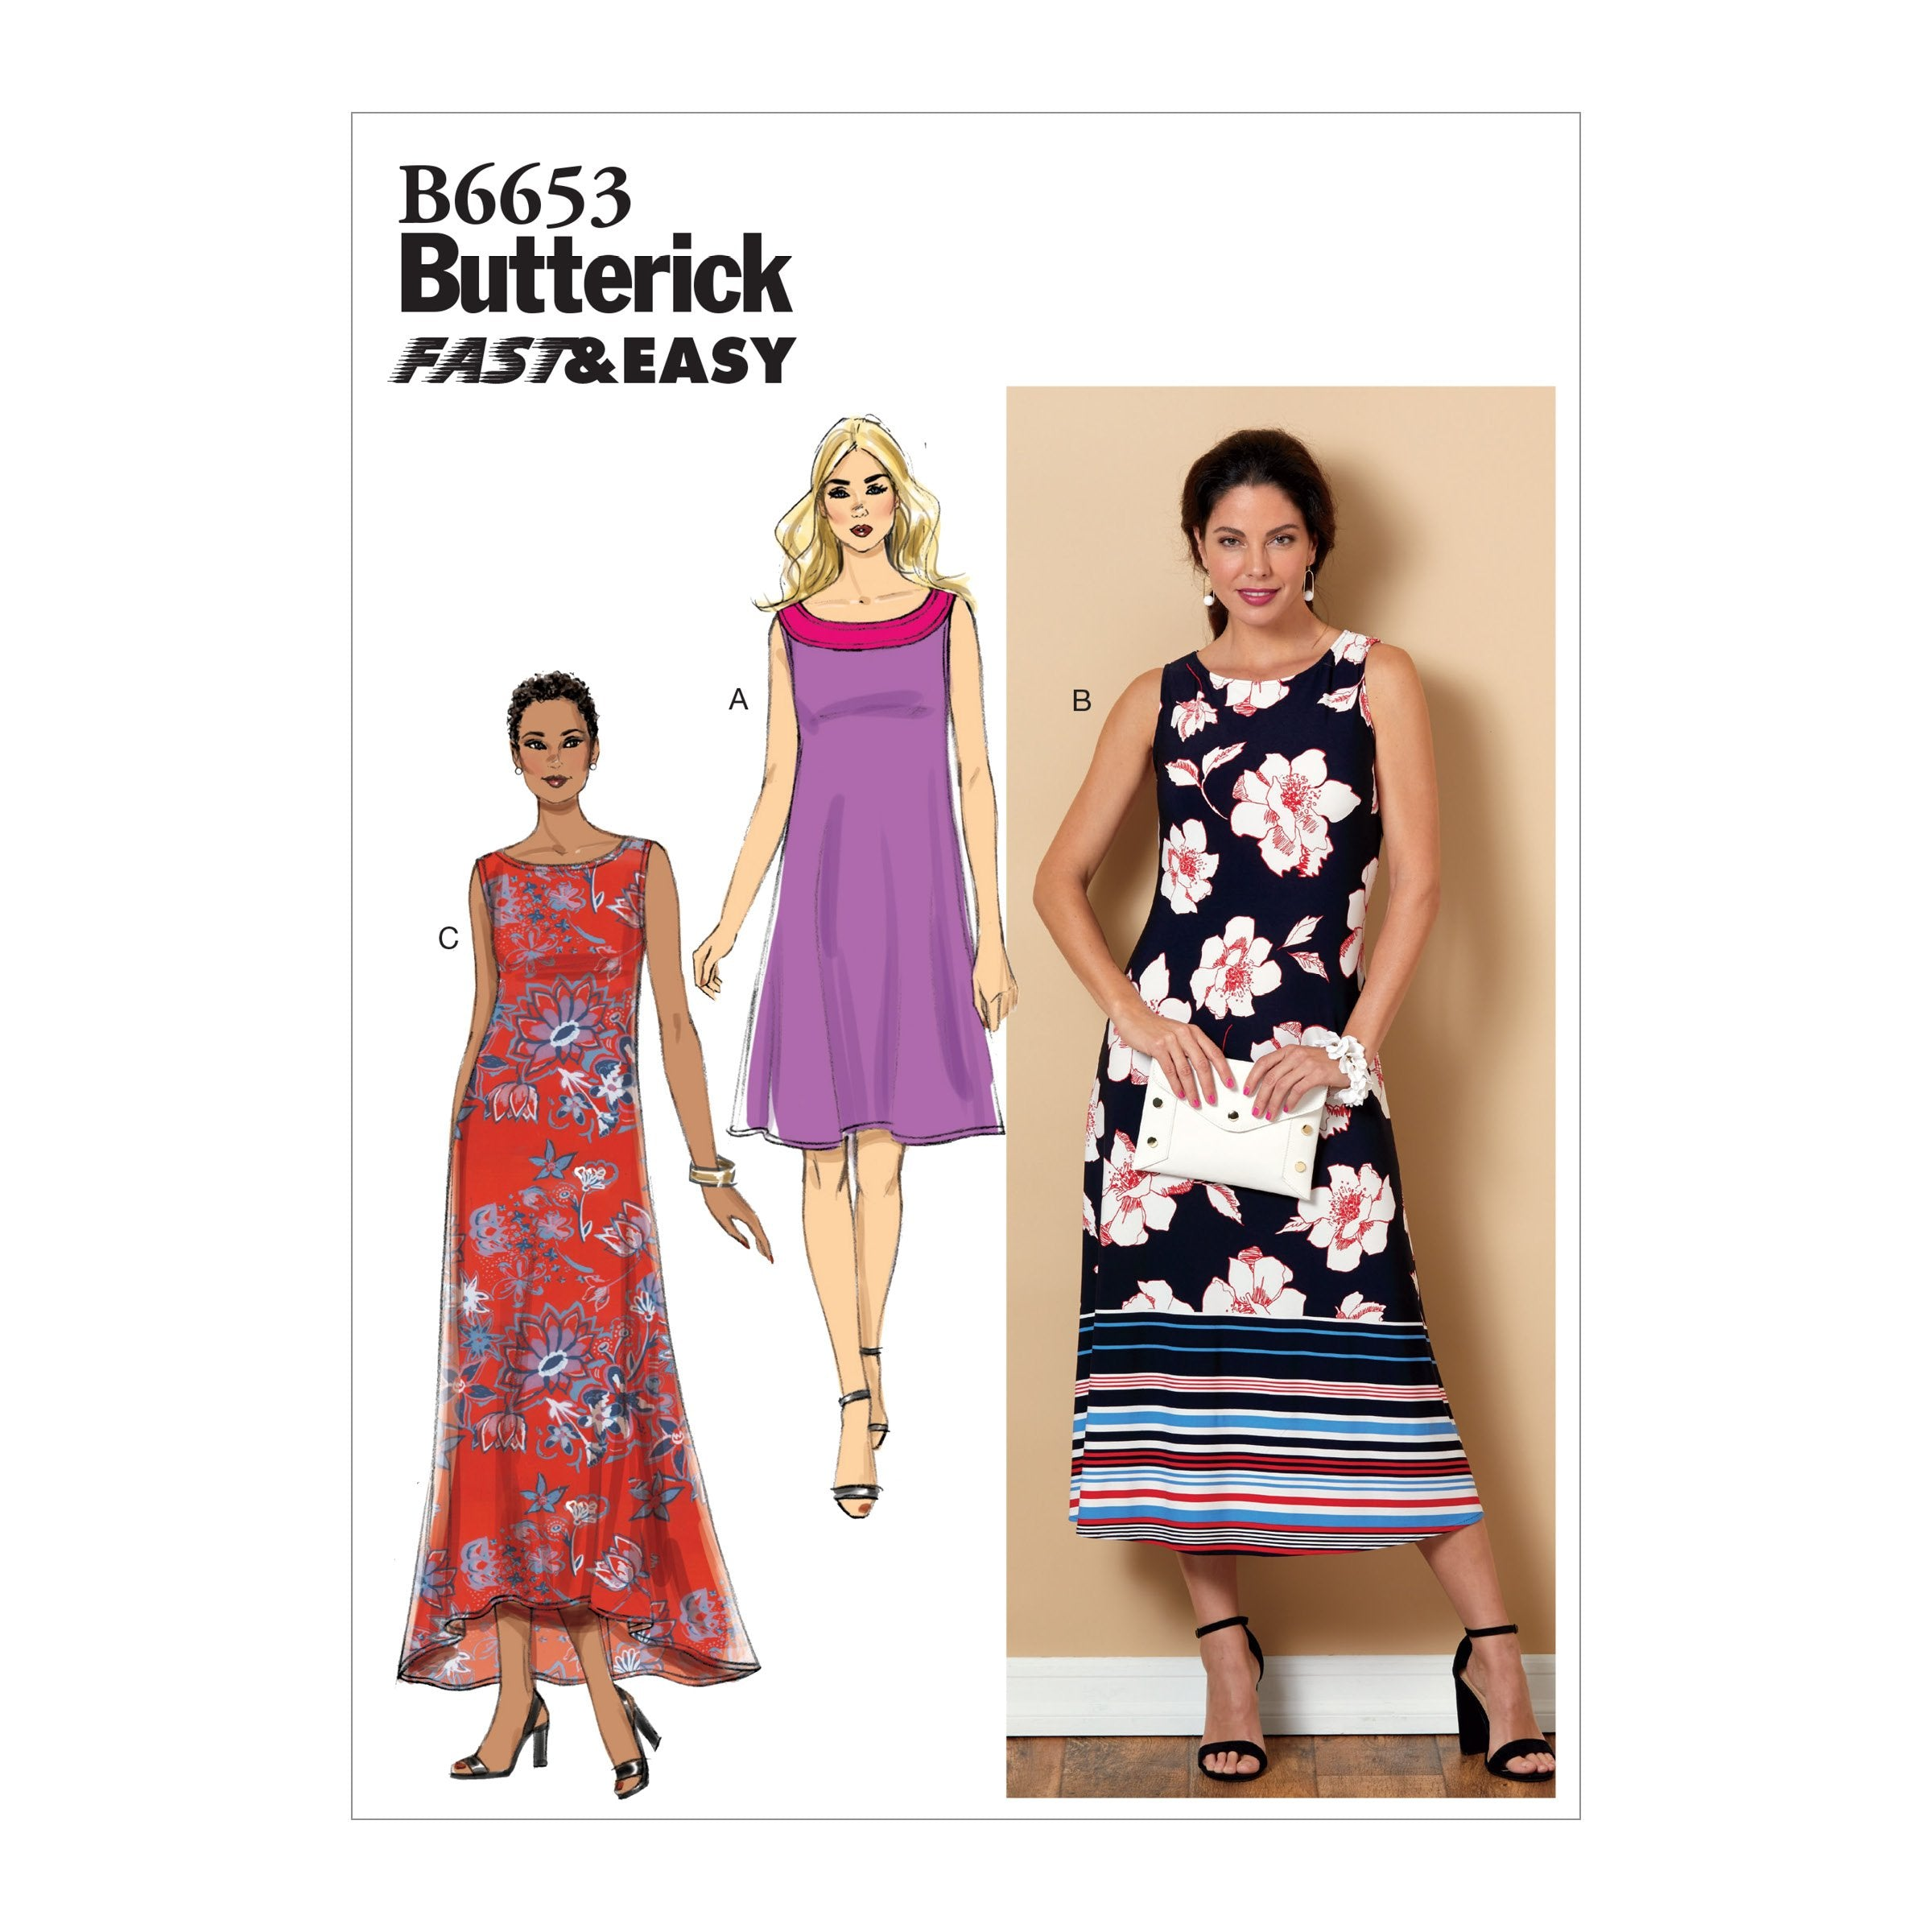 Butterick B6653 Dress Sewing Pattern